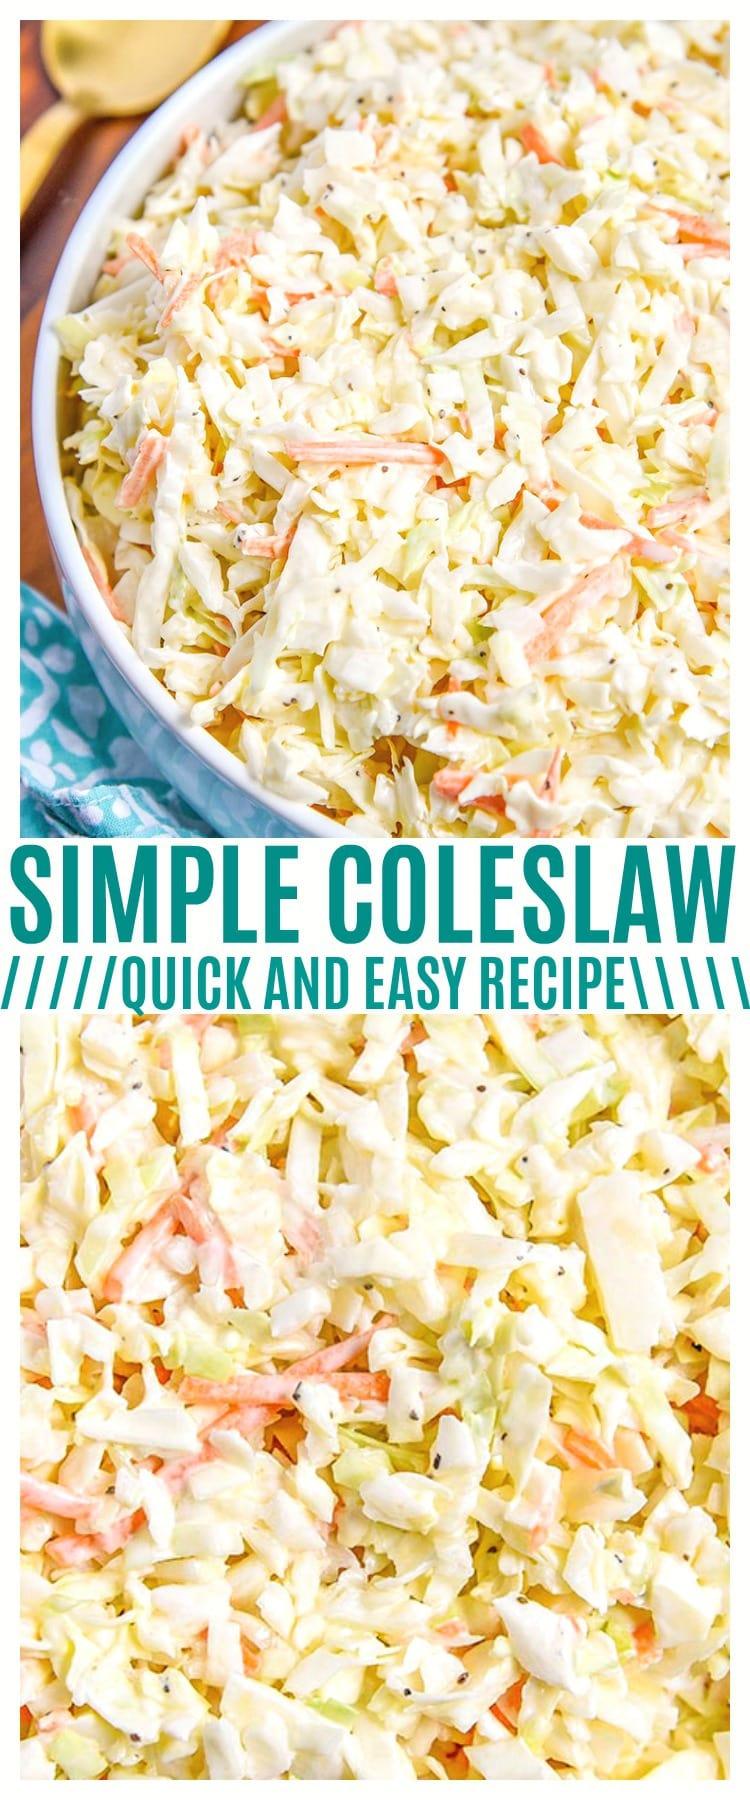 This simple coleslaw recipe is perfect for party food summer parties! You could even use our coleslaw dressing recipe for store-bought coleslaw mix.